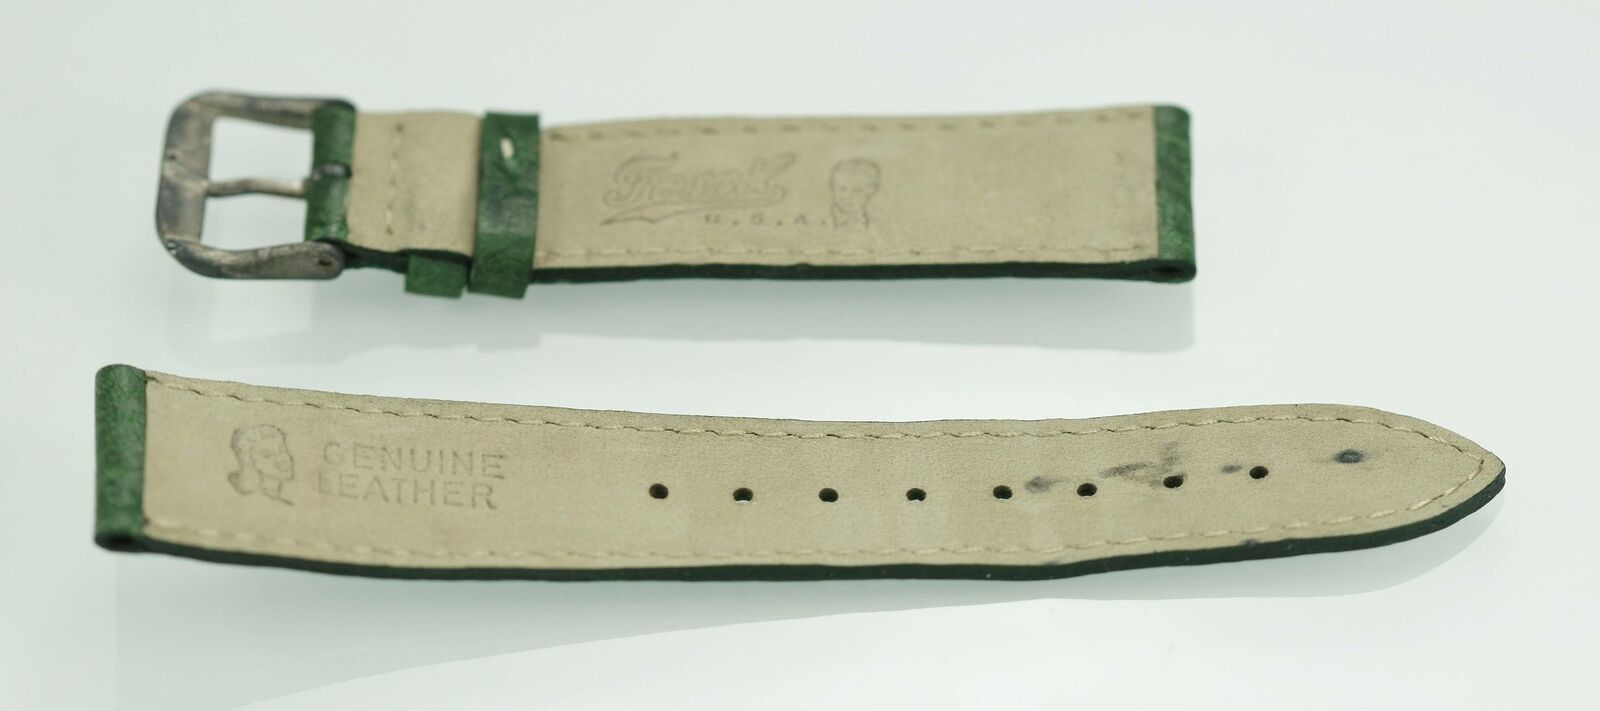 Fossil Unisex Stainless Steel Green Leather Replacement Watch Band 18mm